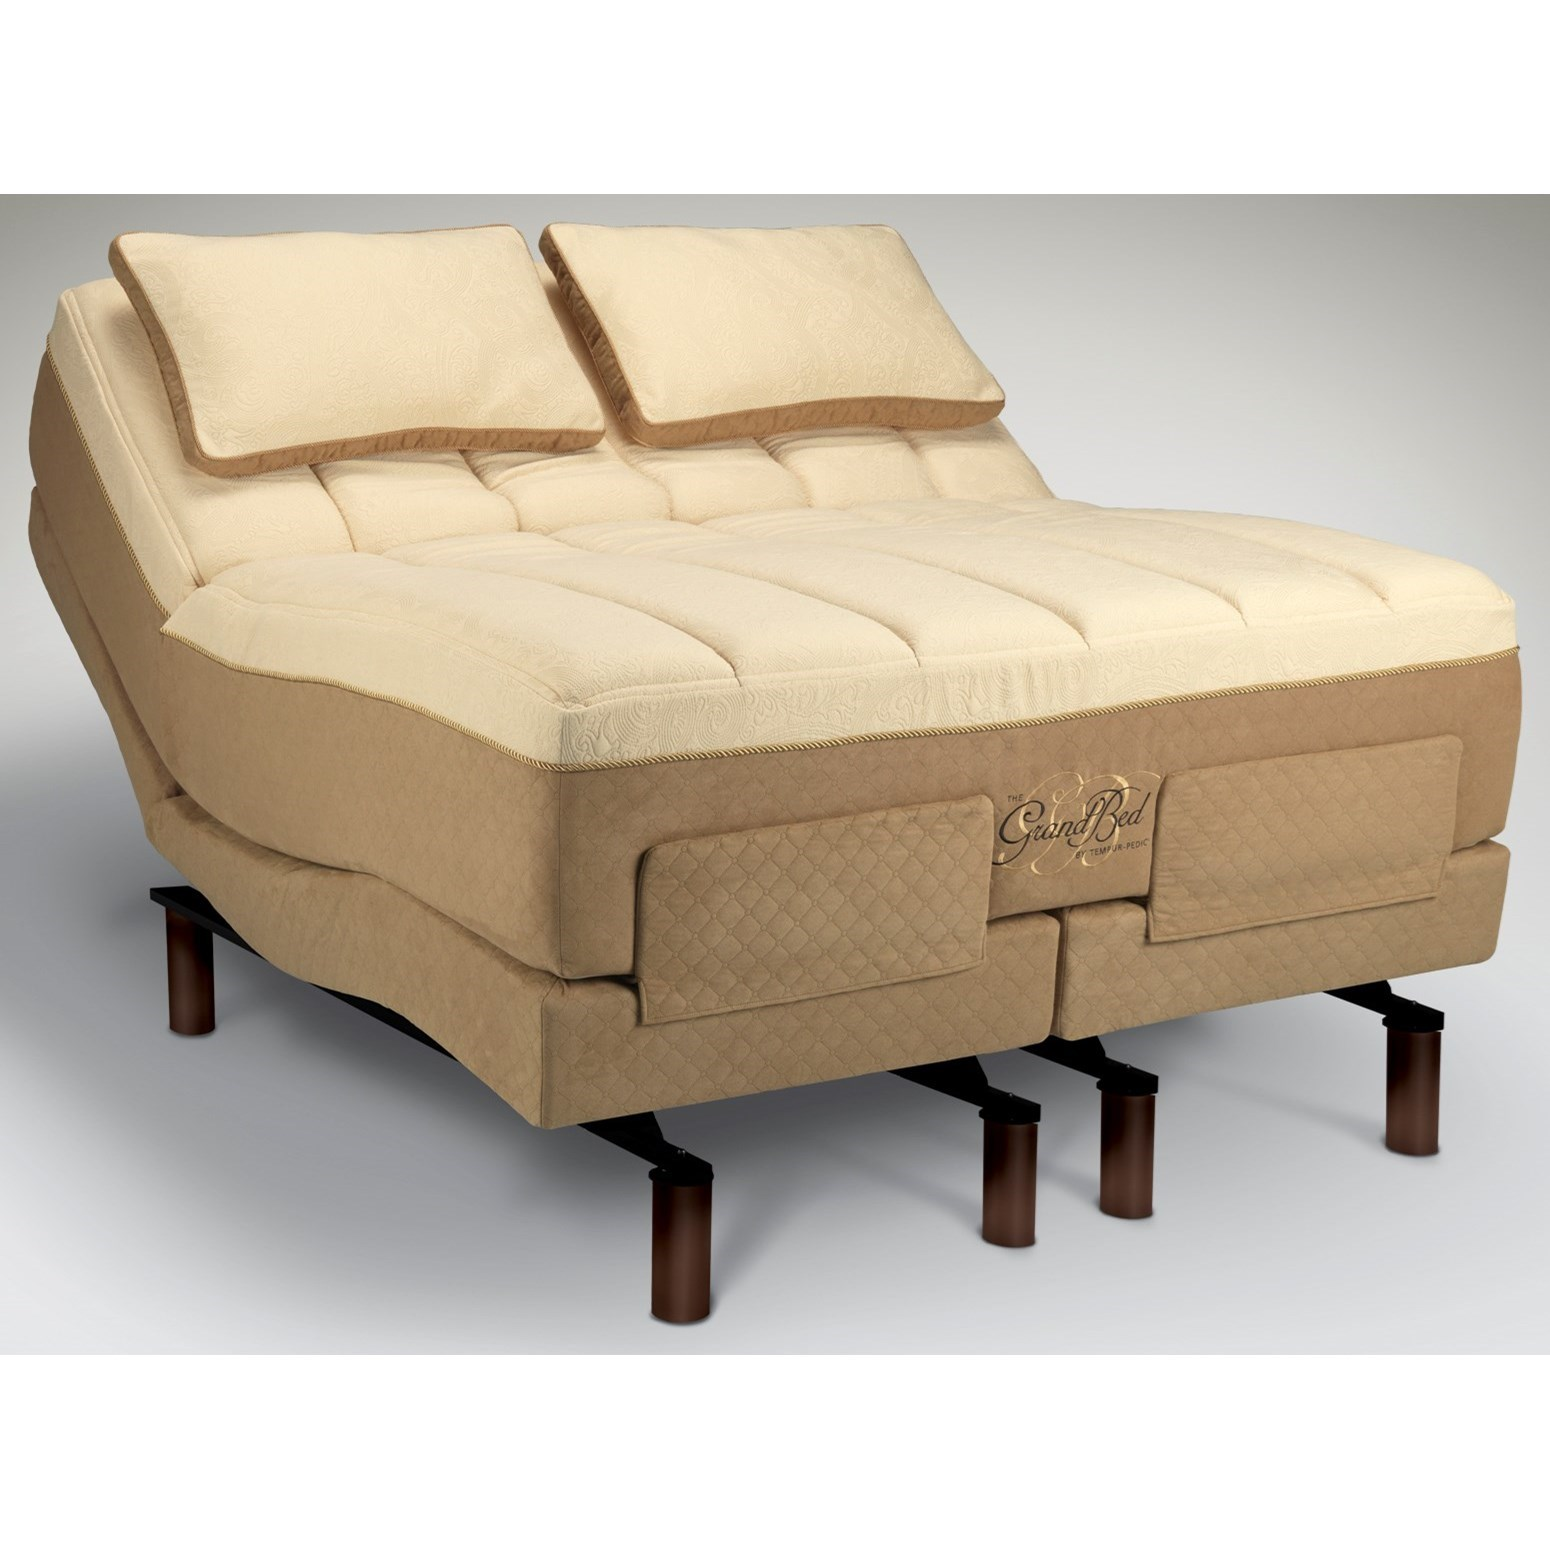 Tempurpedic Mattress King Size Tempur Pedic Grandbed King Medium Soft Mattress And